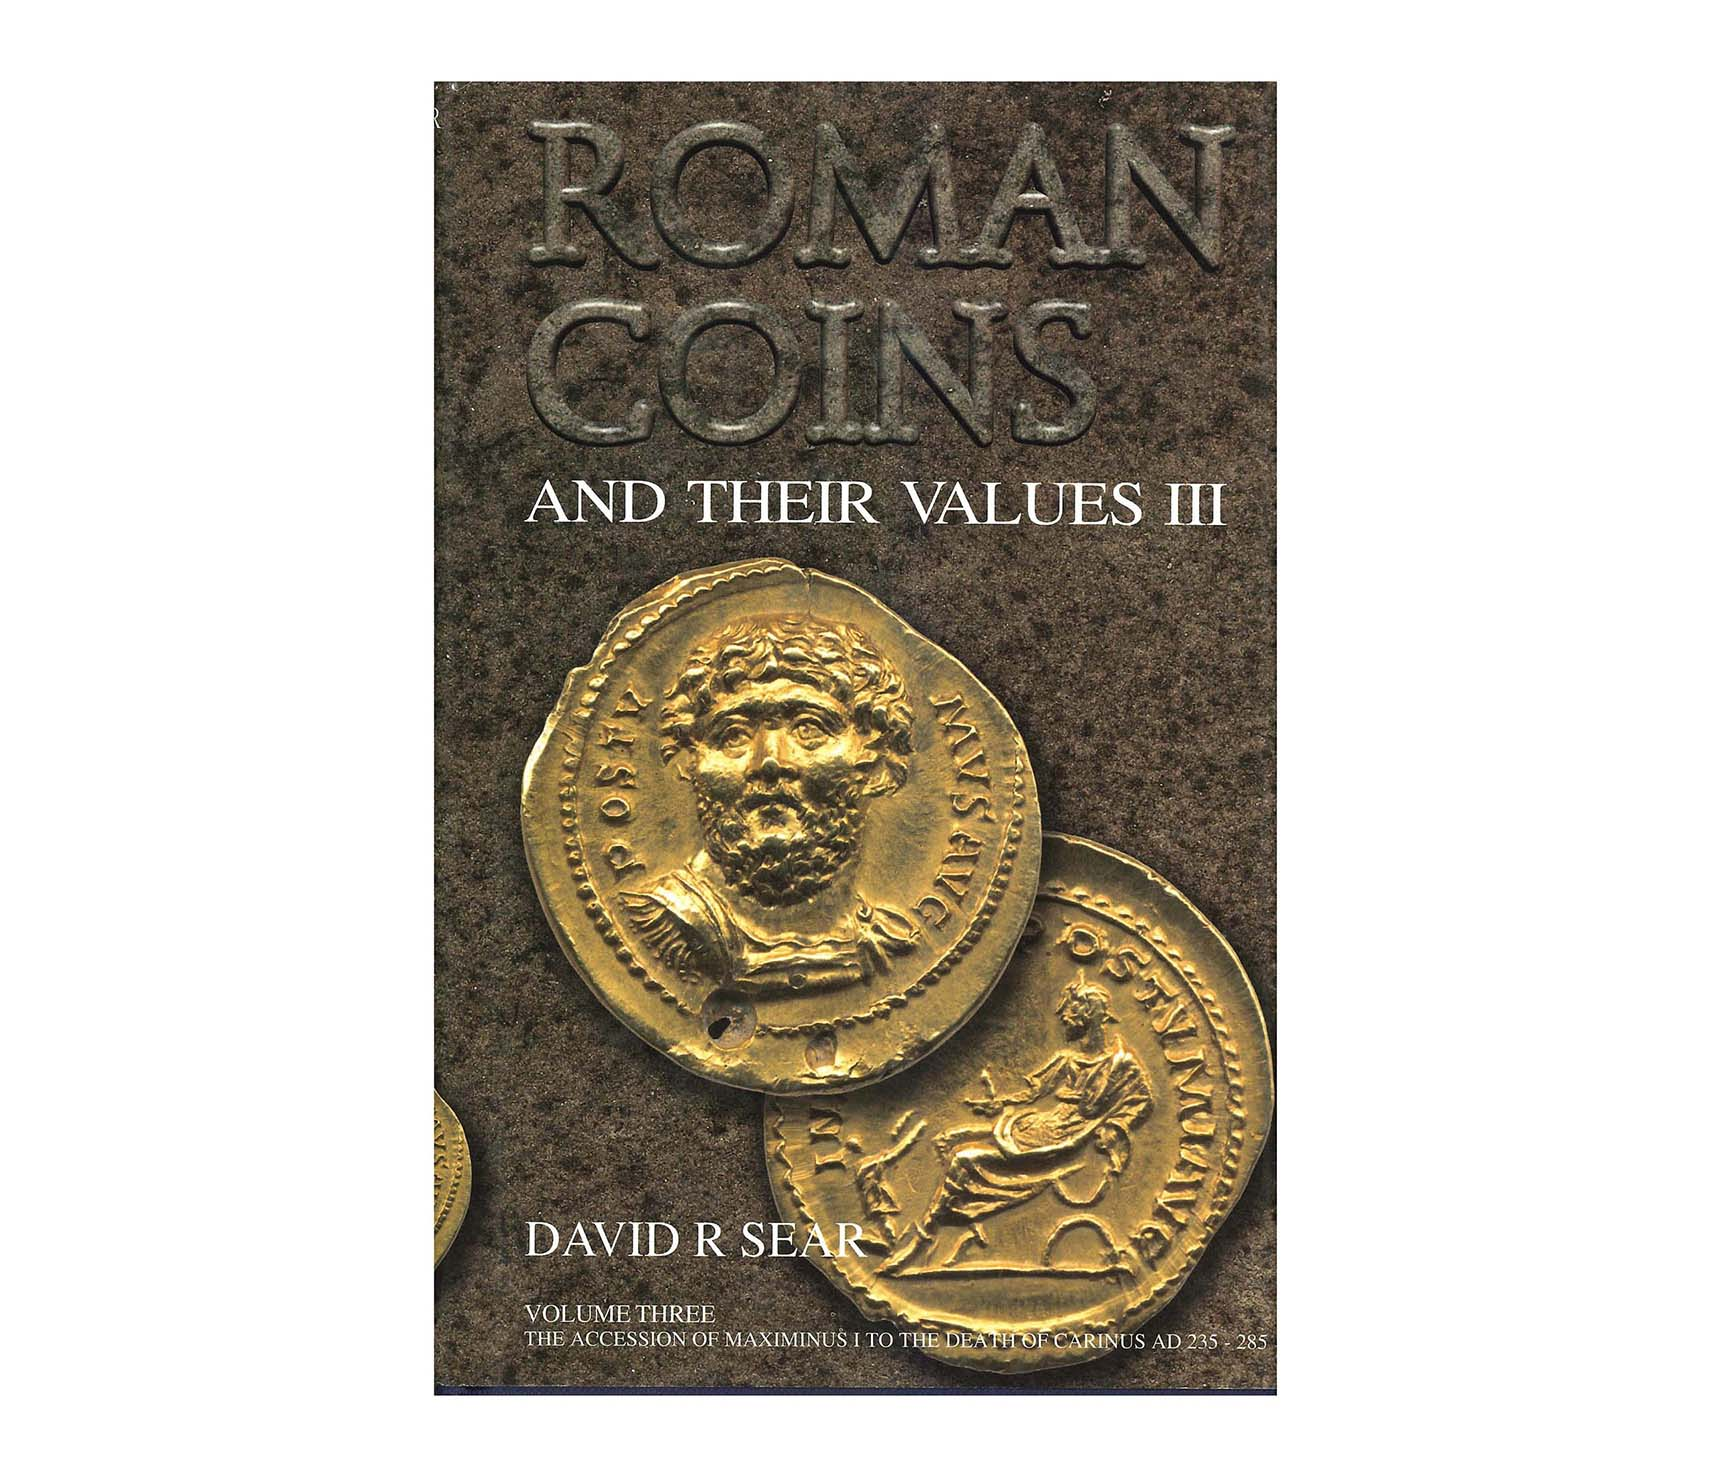 Roman Coins and Their Values, Volume III: The Accession of Maximinus to the to the Death of Carinus